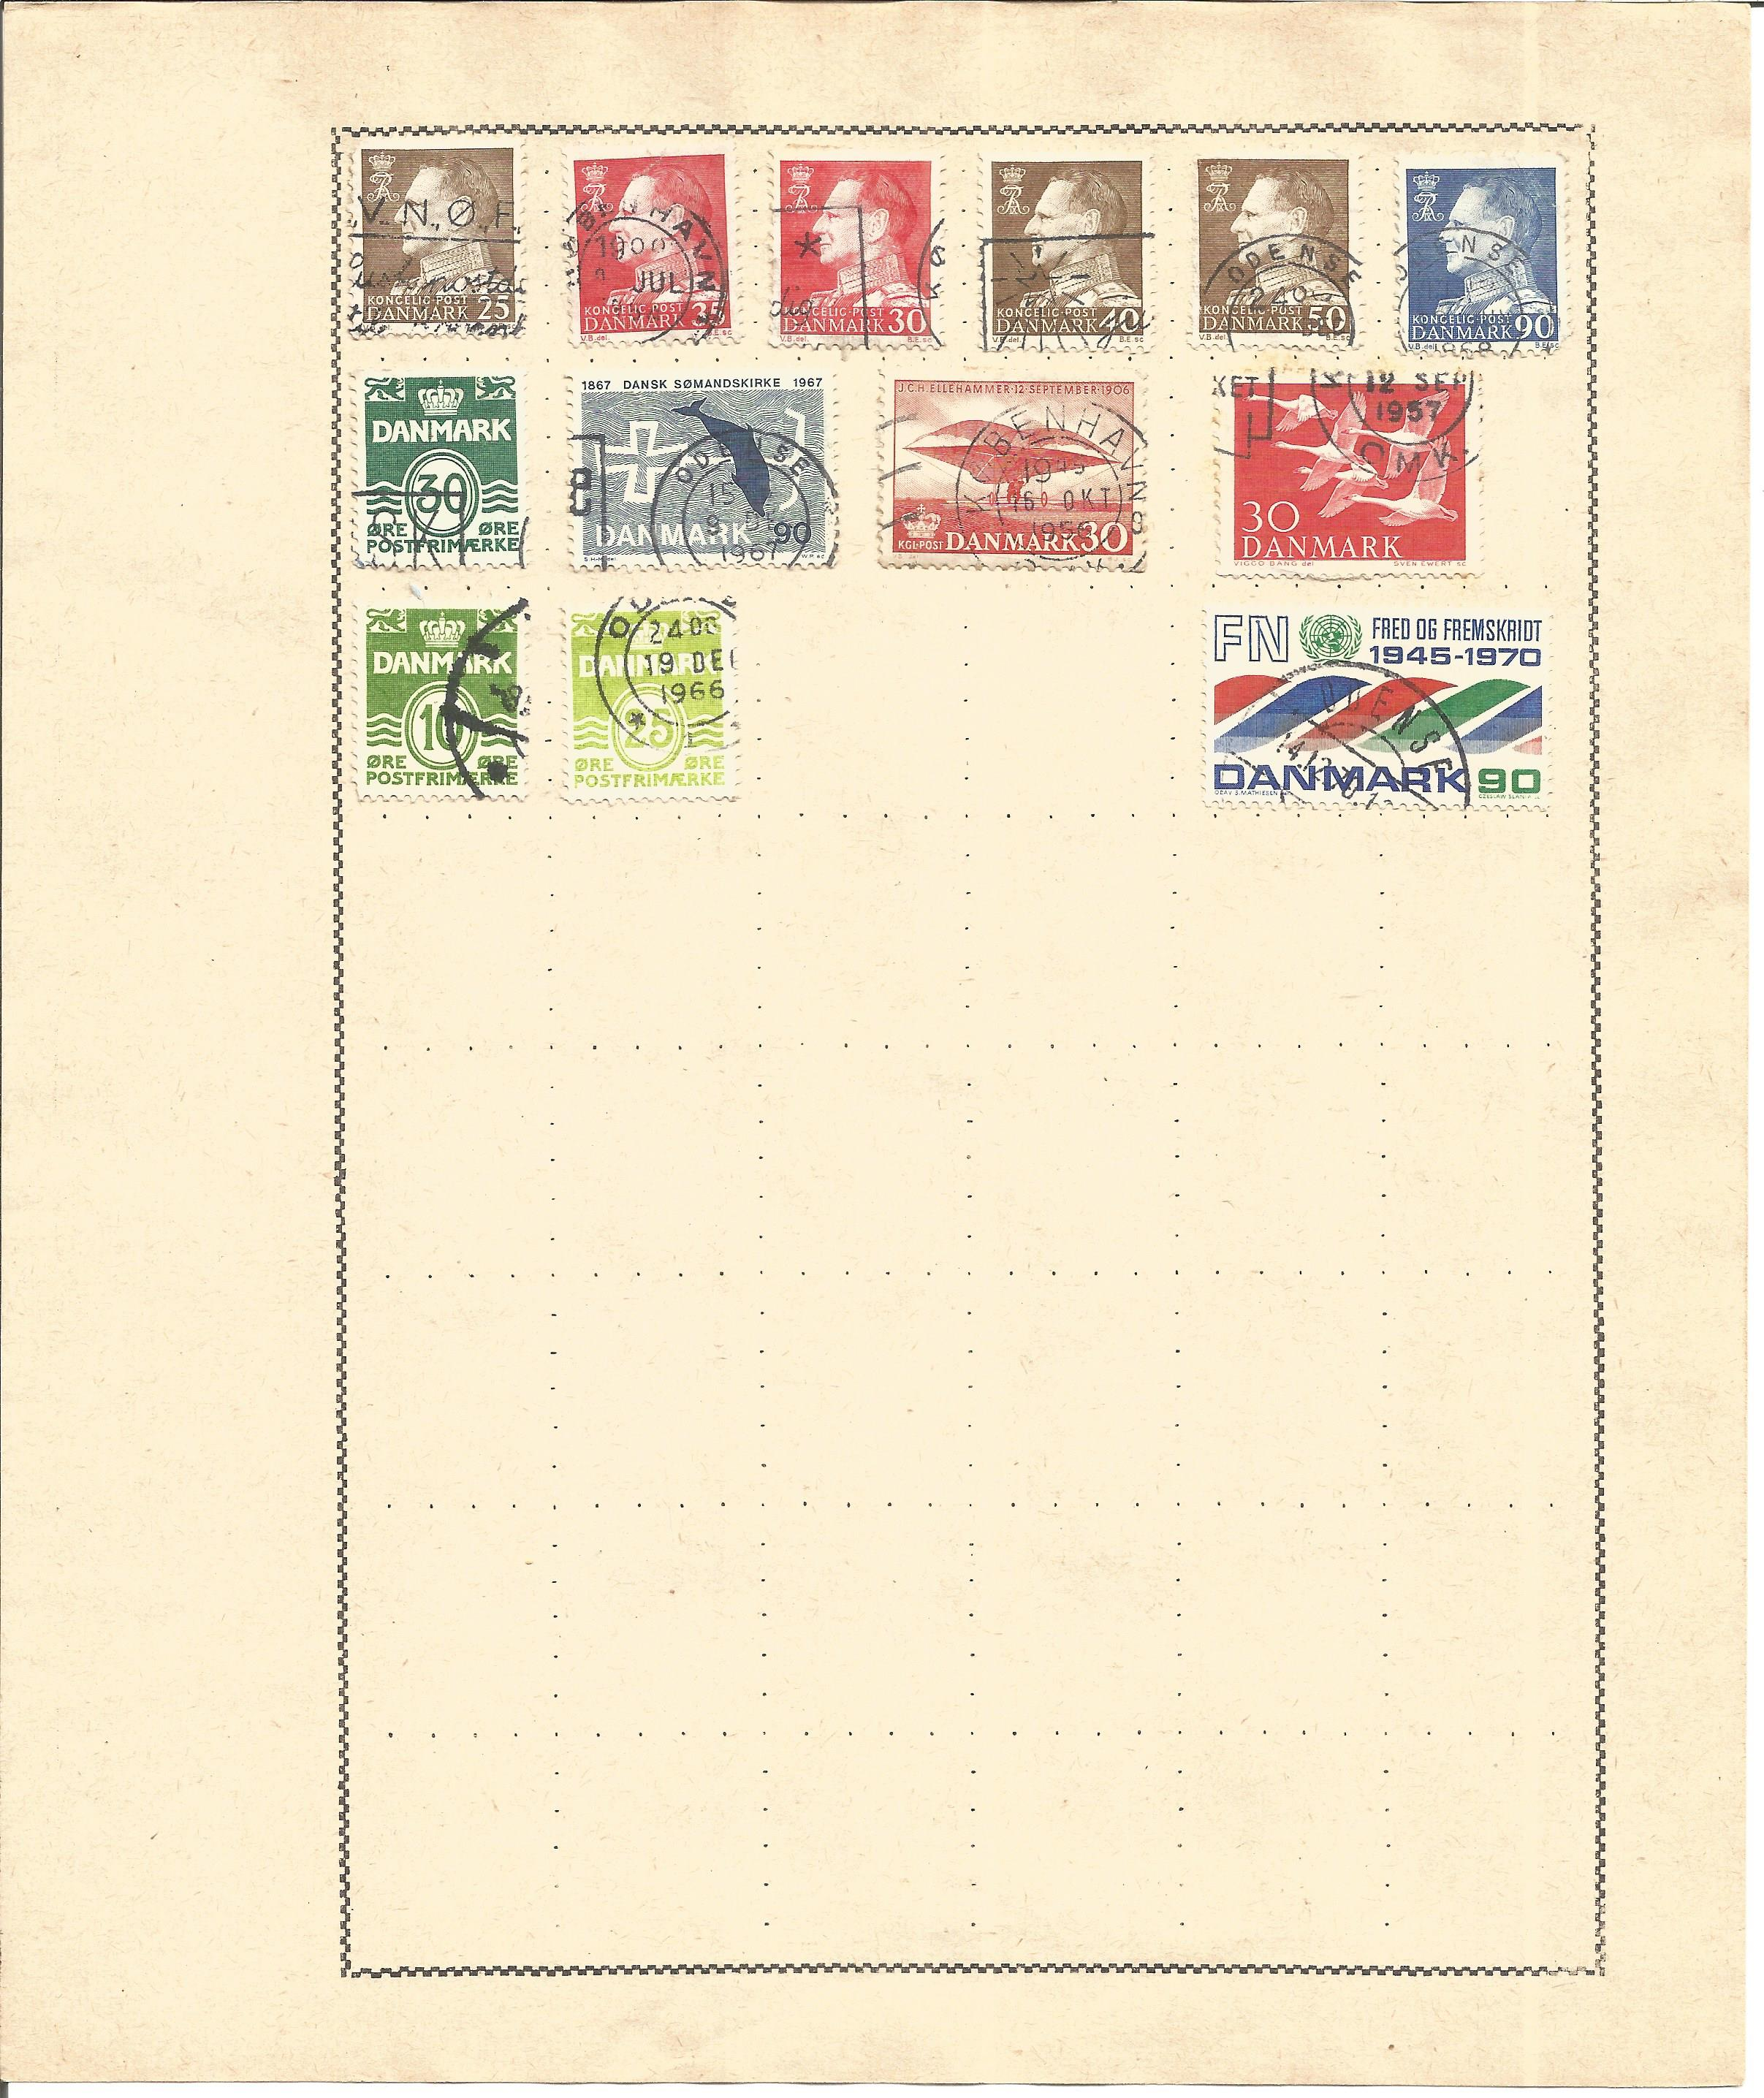 European Stamp collection 5 loose album leaves countries include Denmark and Norway. Good condition. - Image 3 of 3